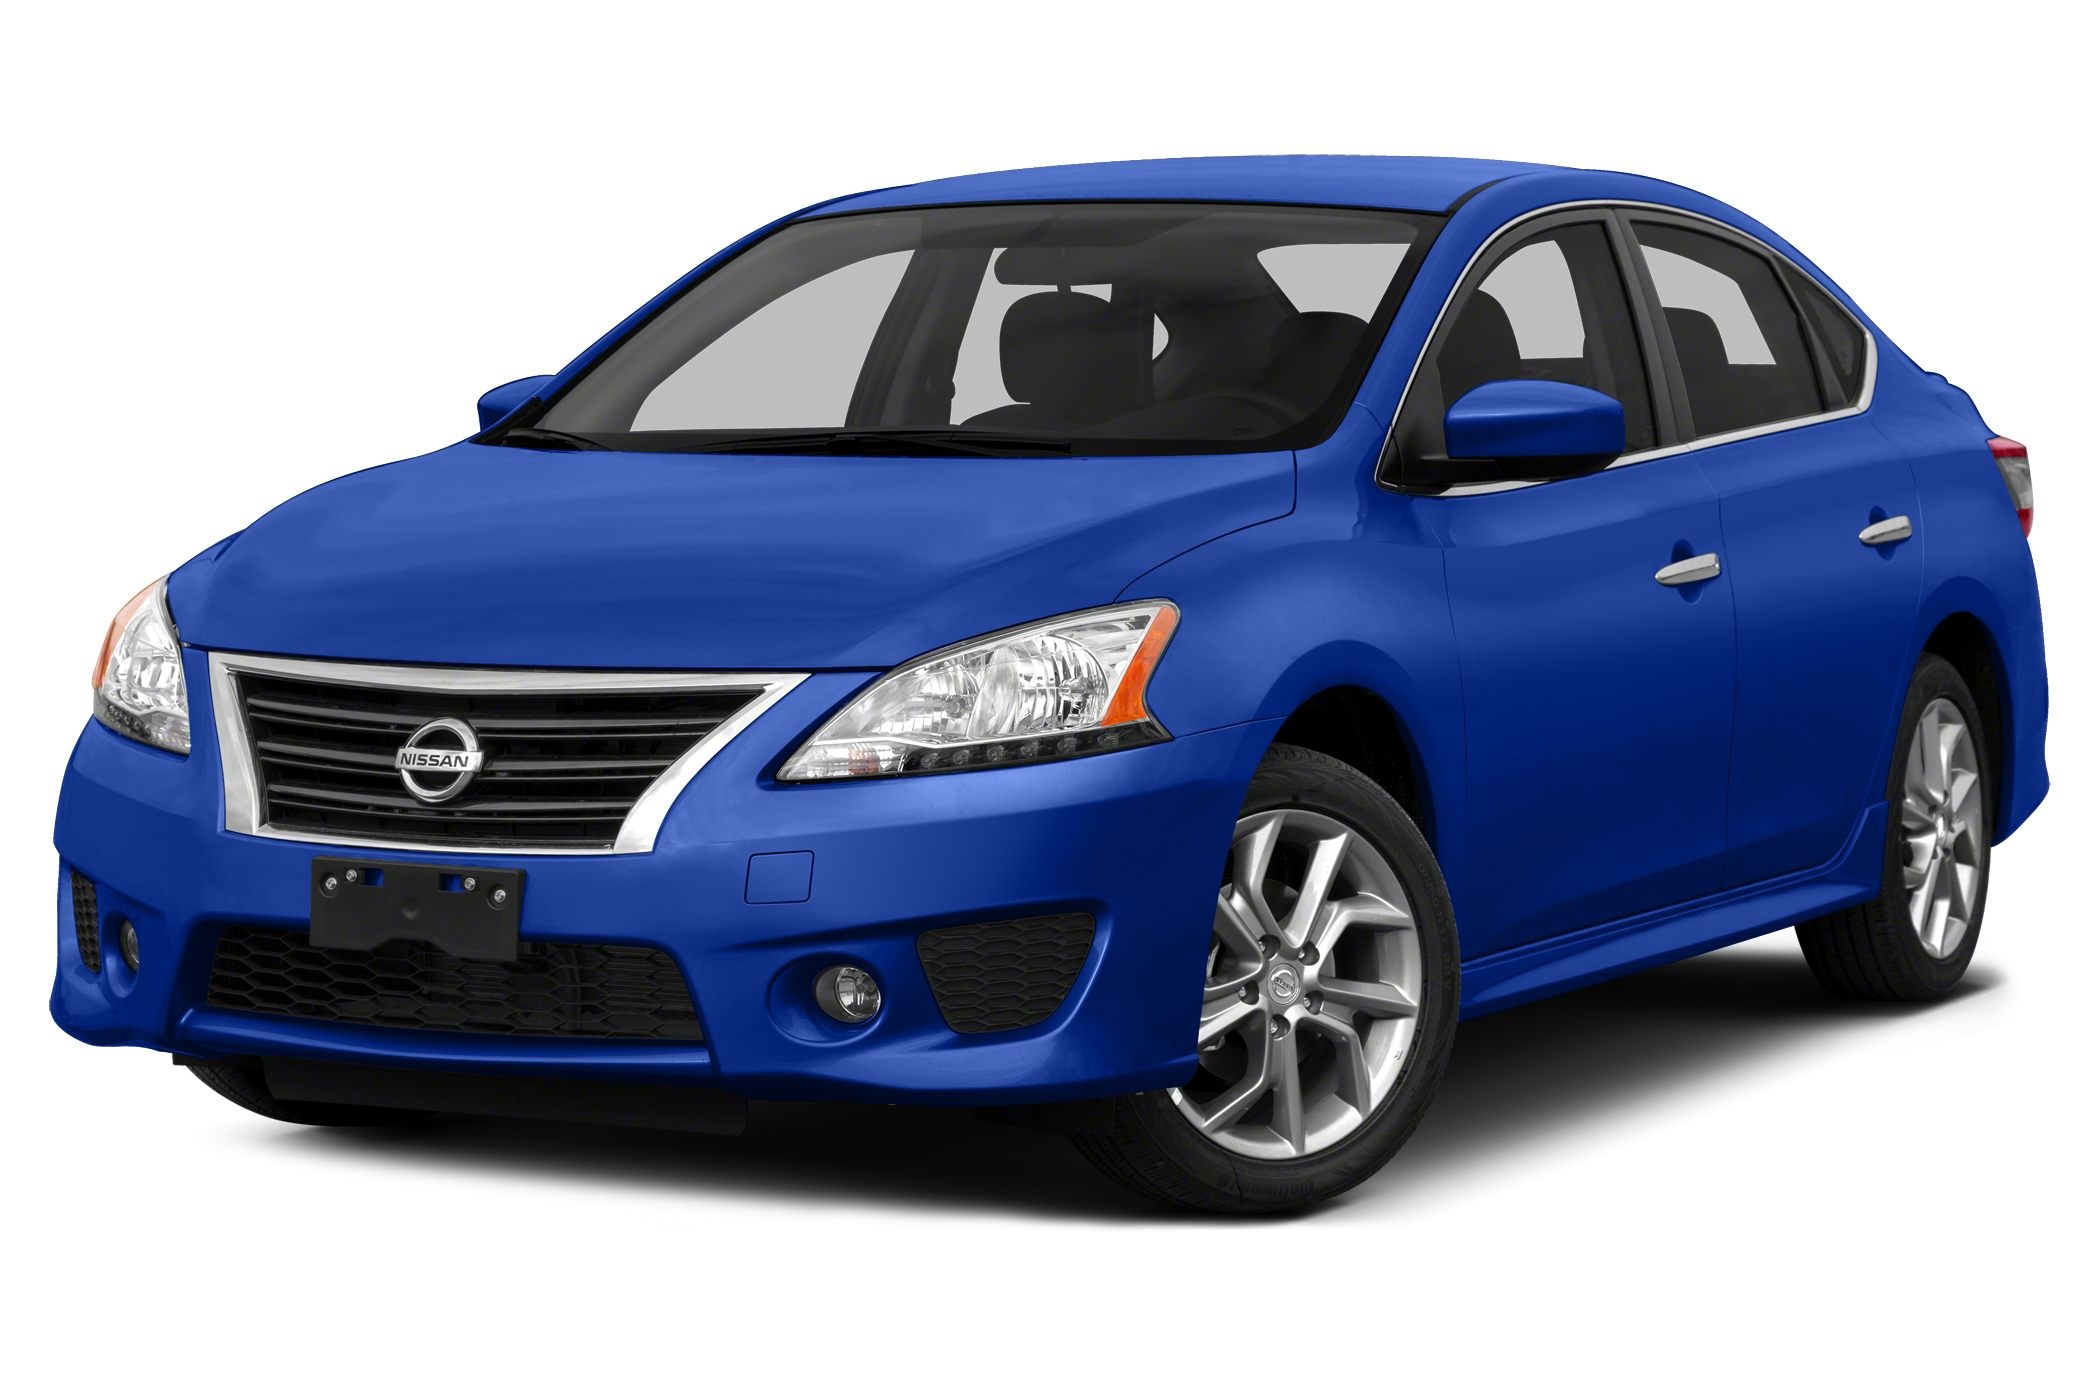 2013 Nissan Sentra SR Proudly serving manatee county for over 60 years offering Cars Trucks SUV